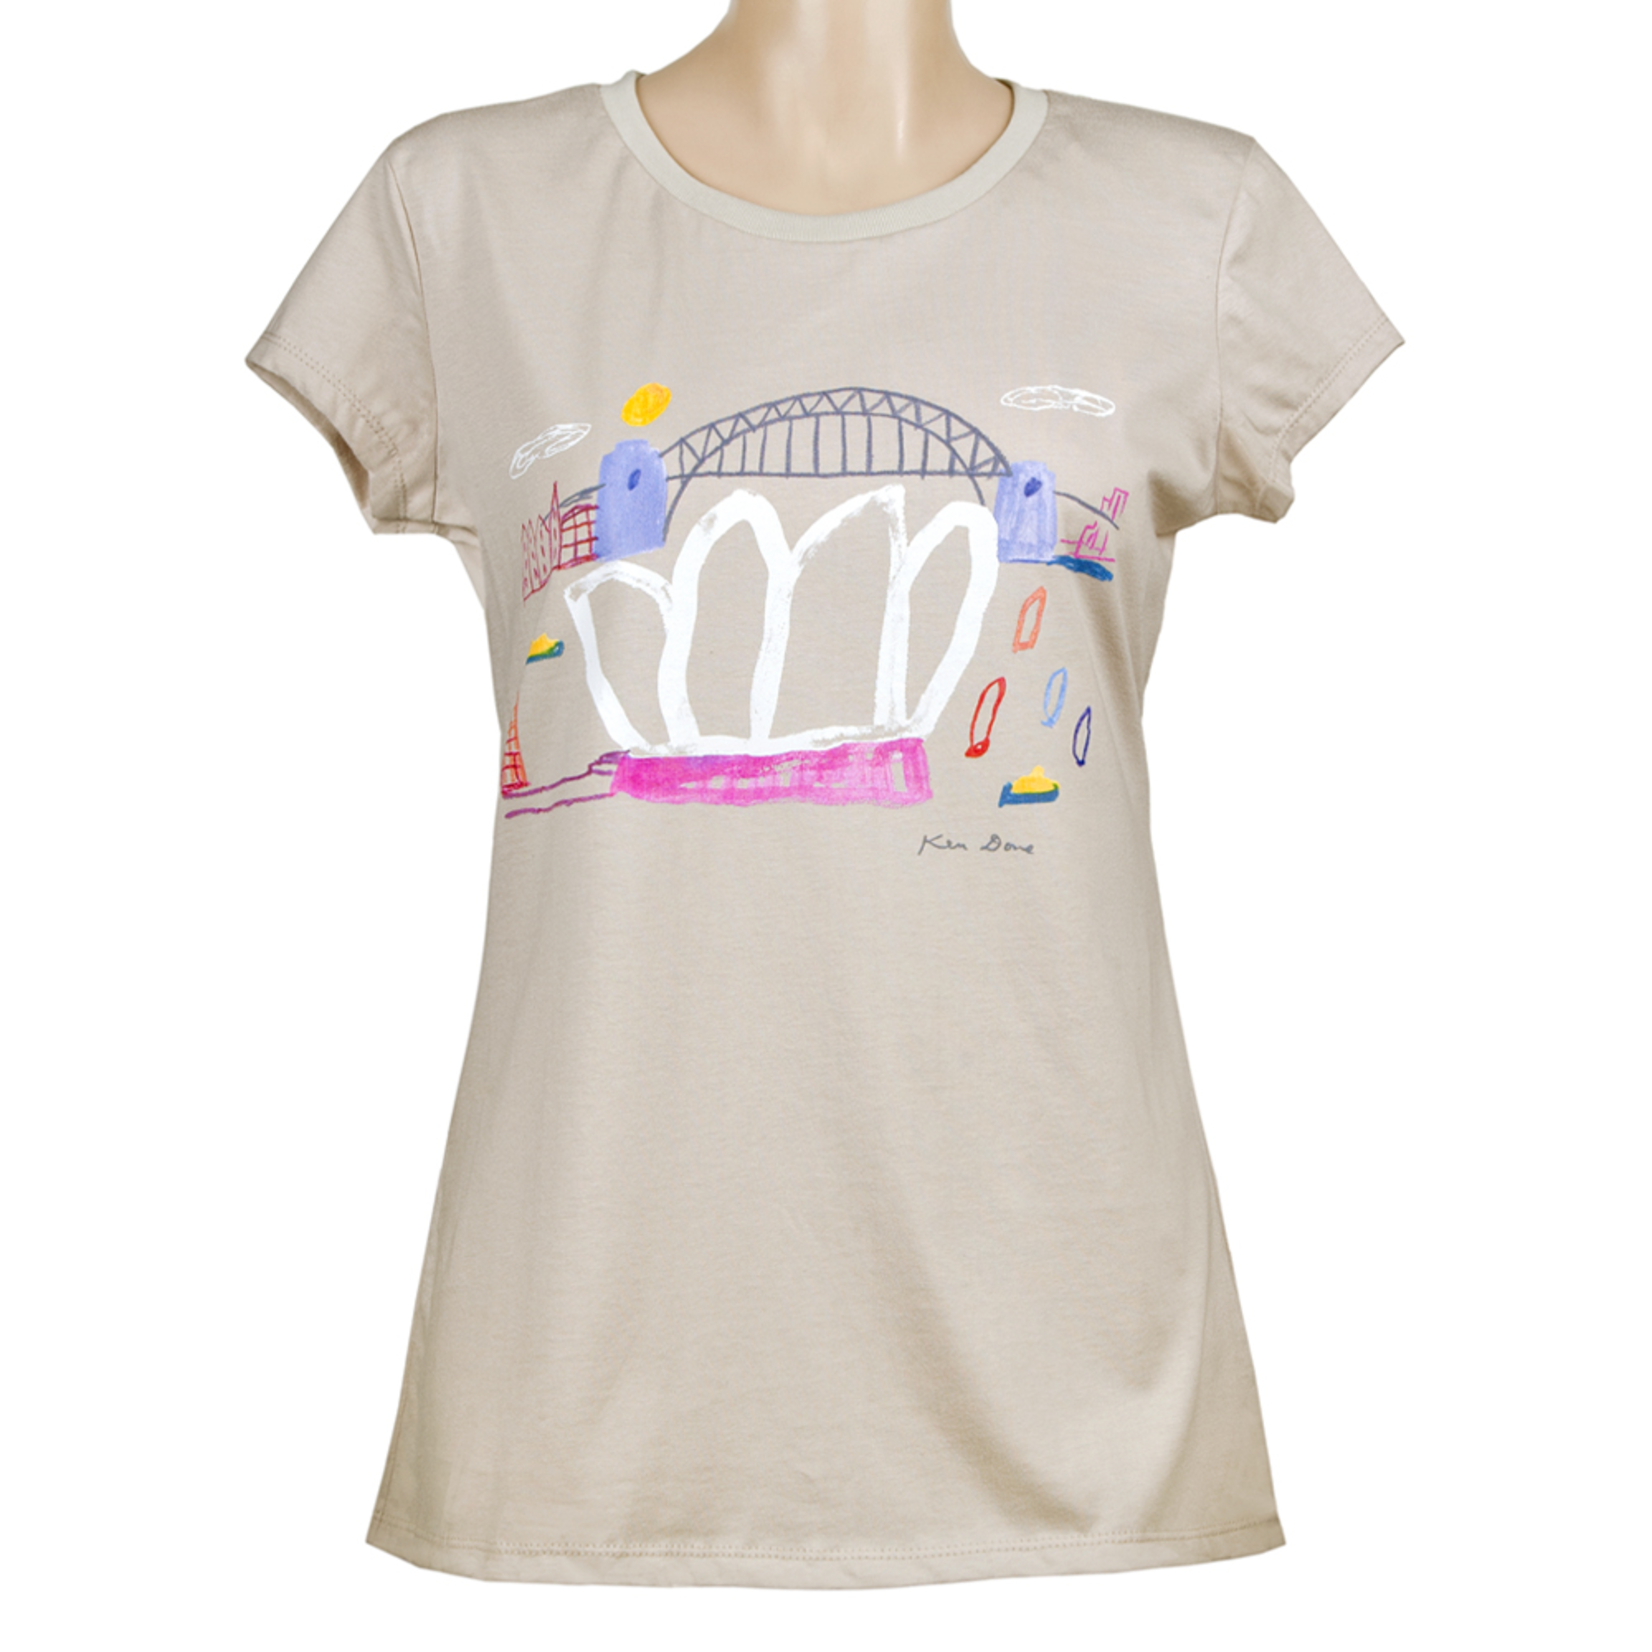 Clothing Tshirt - Fitted - Sydney Coloured Sails Light Grey